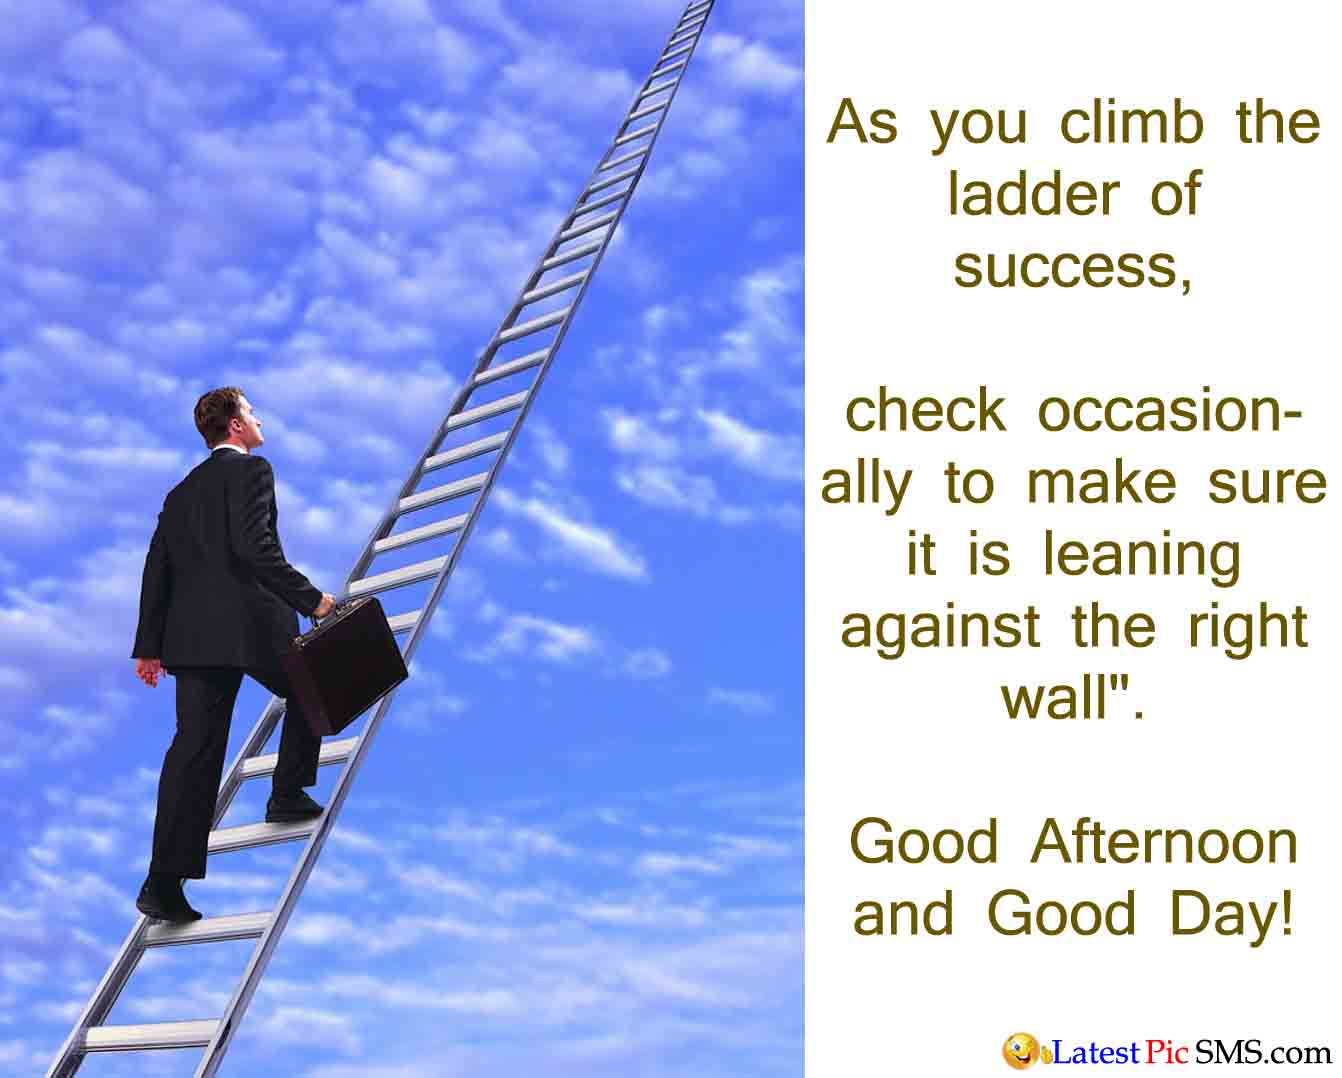 Climb ladder Good Noon Images